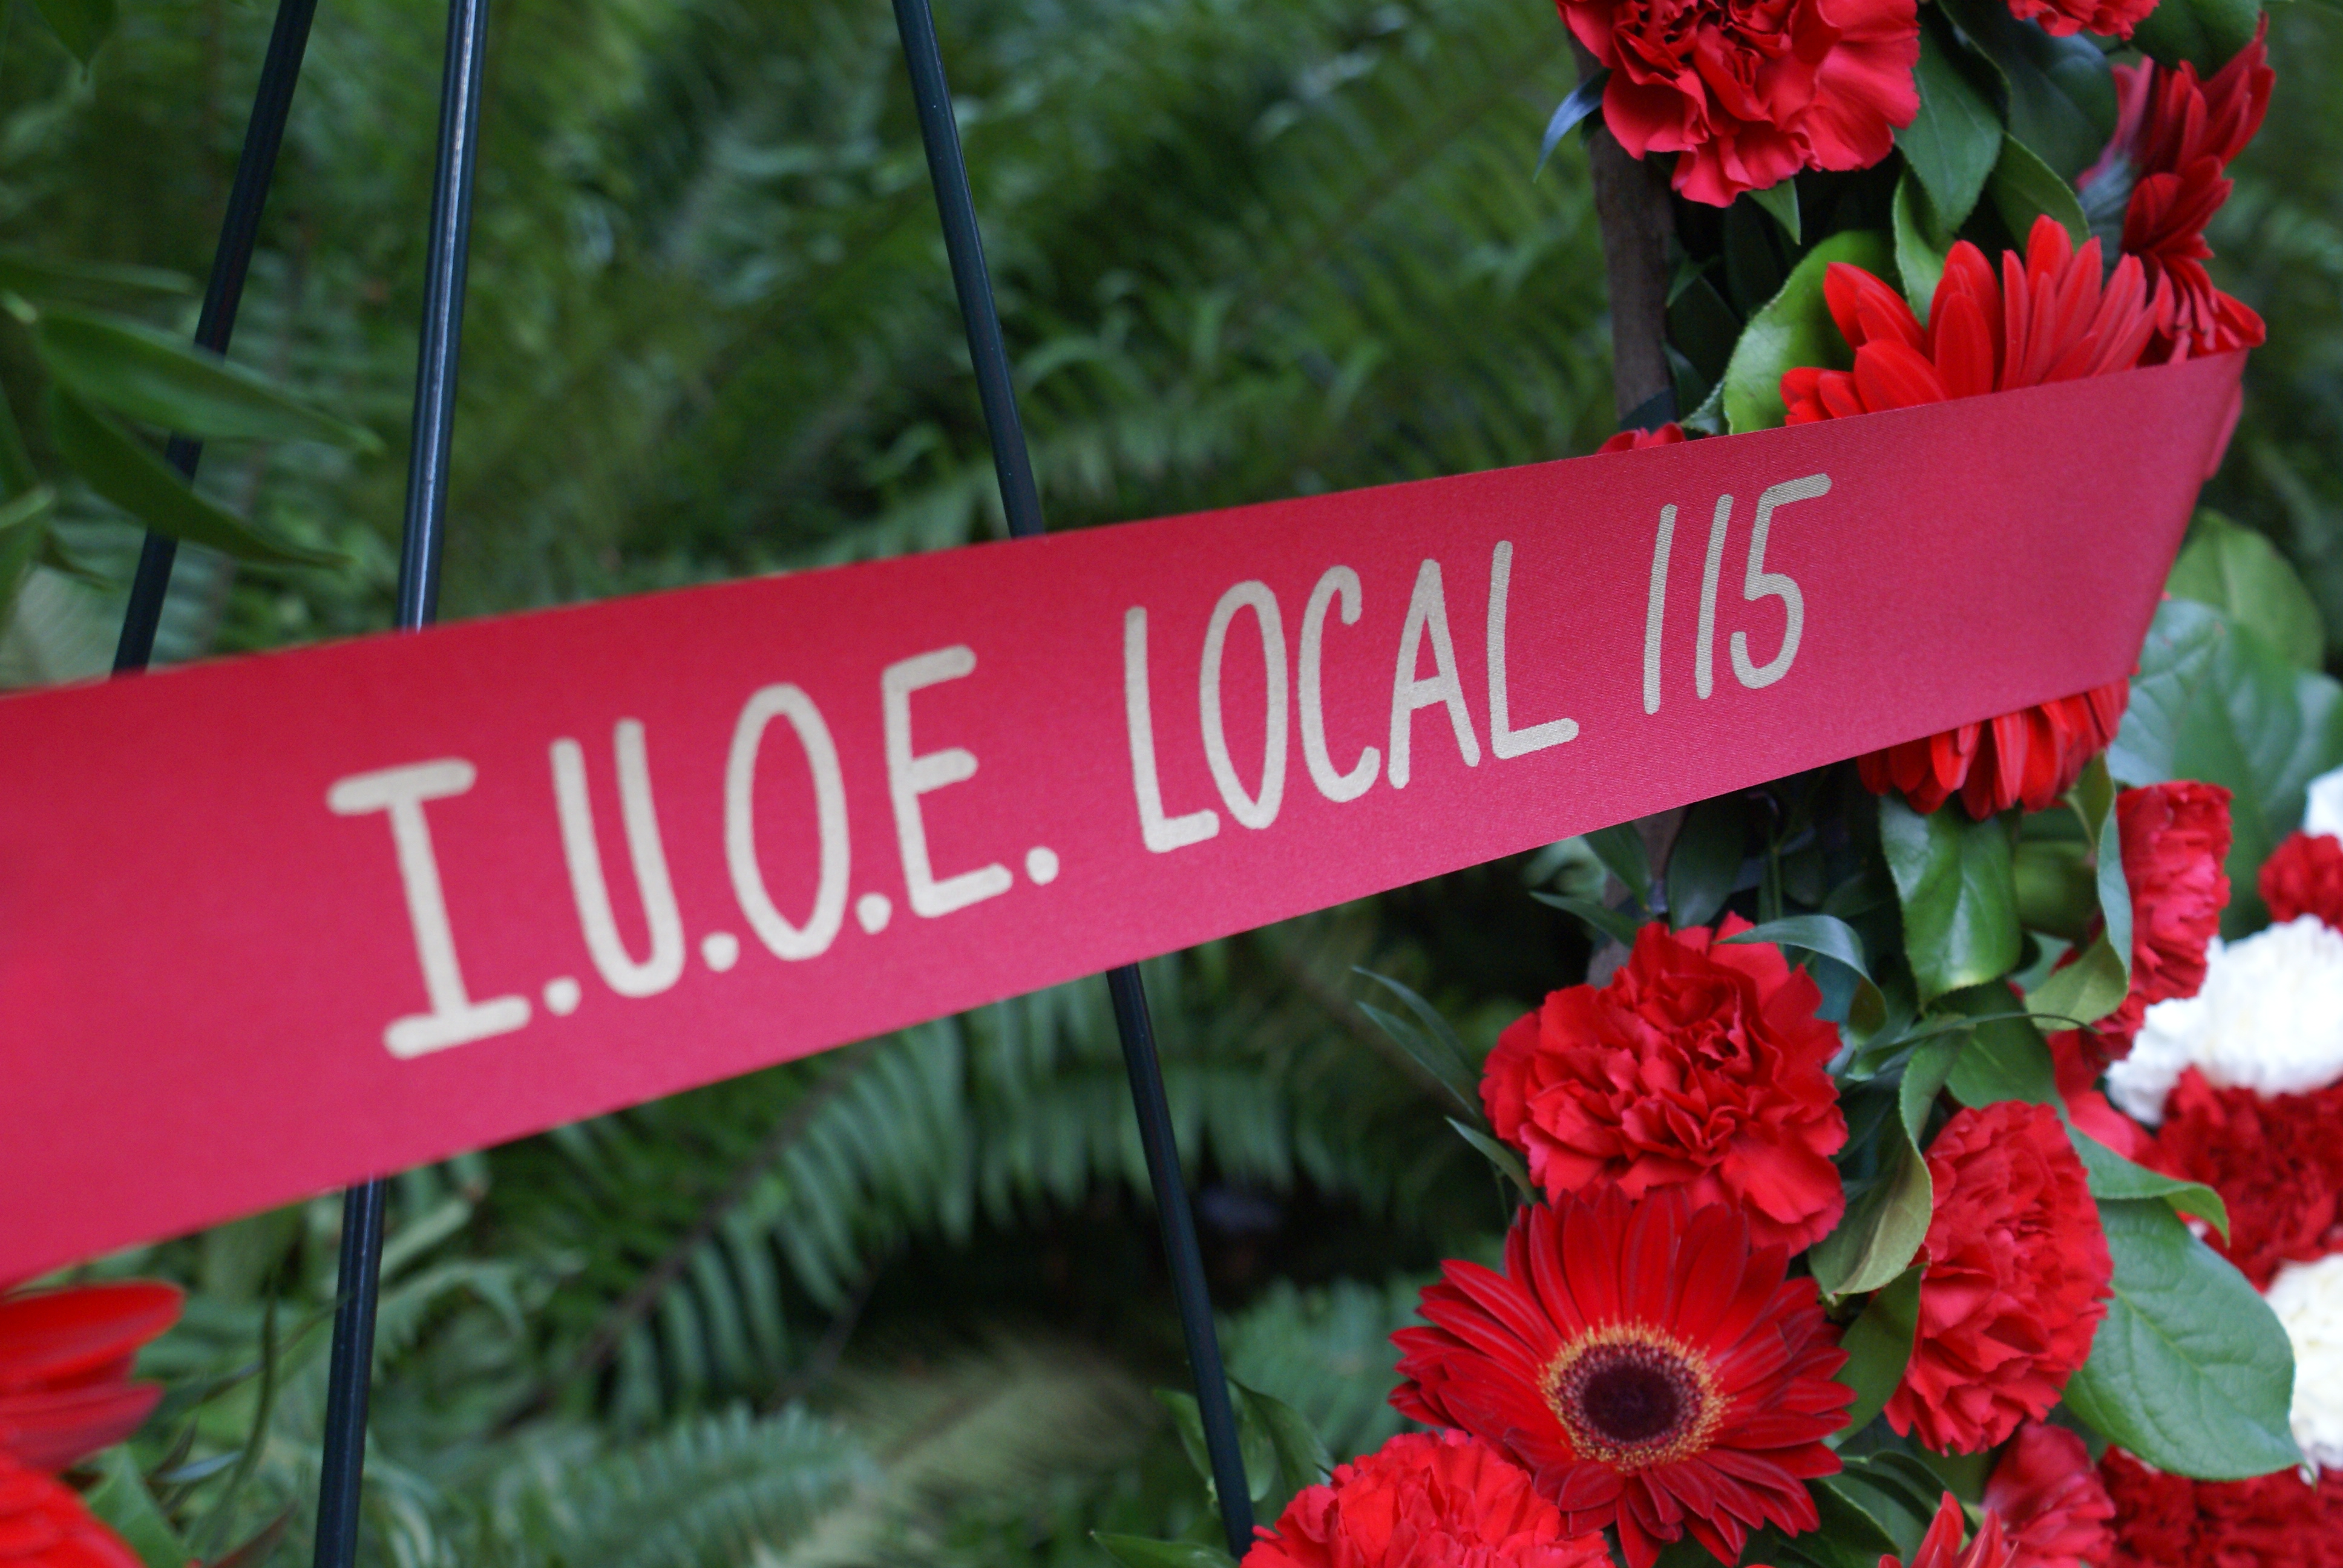 IUOE Local 115 commemorates the 35th anniversary of the Bental IV tragedy